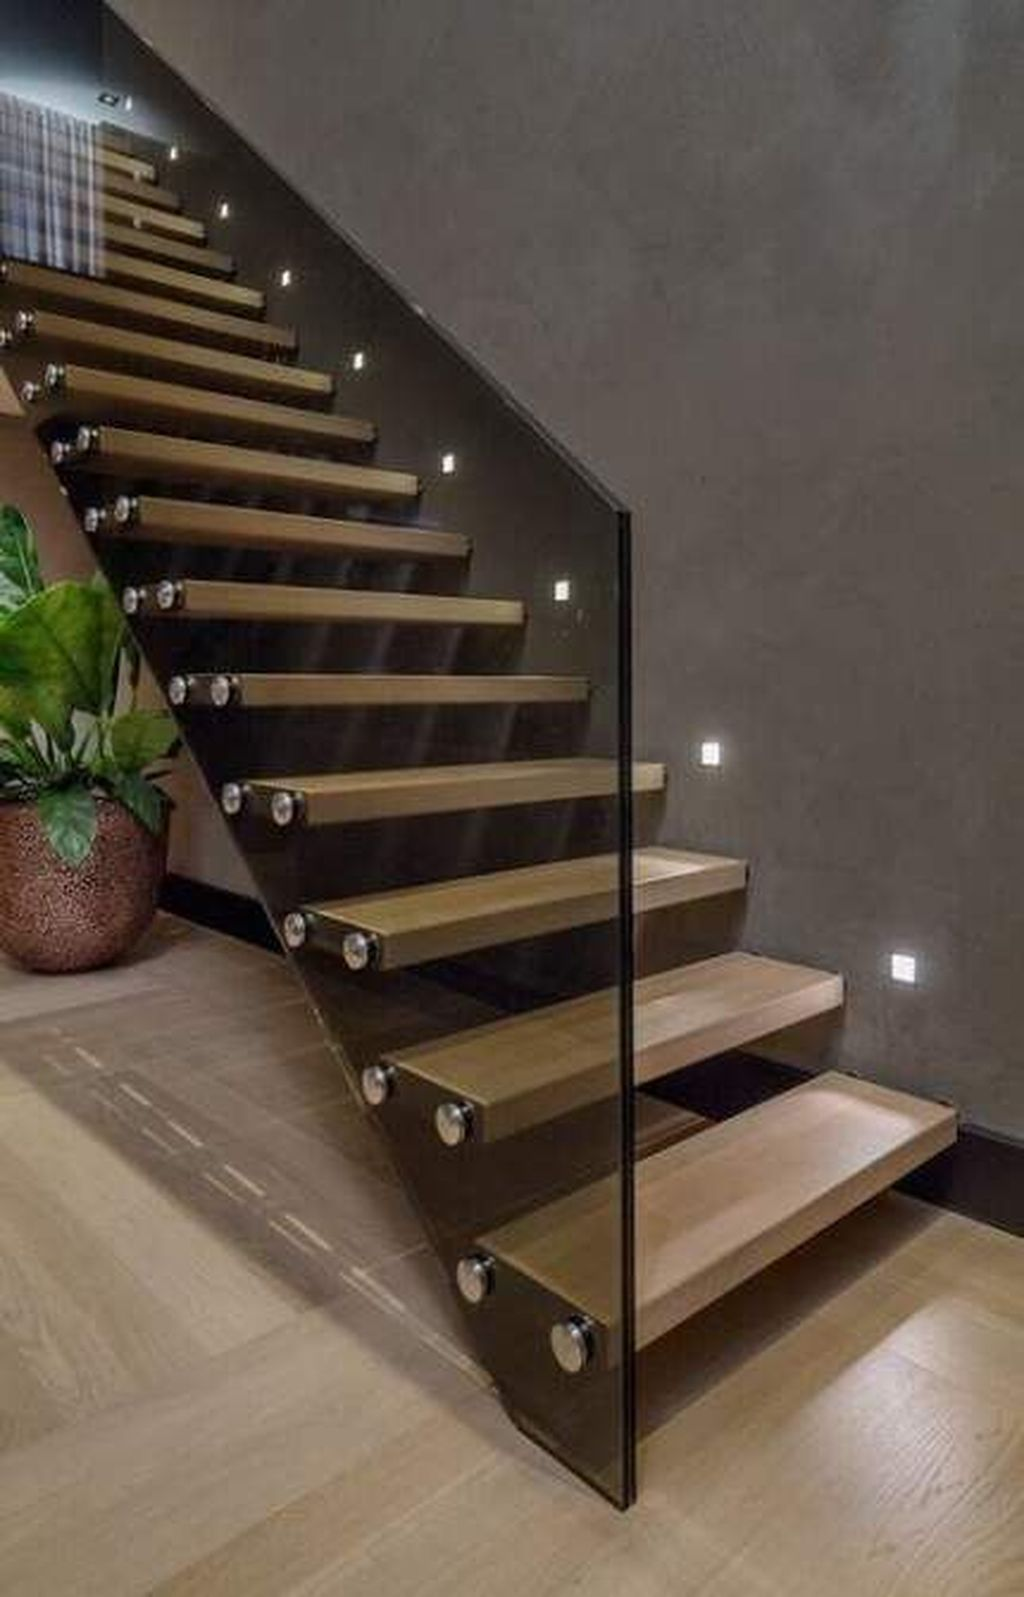 Awesome Modern Glass Railings Design Ideas For Stairs 23